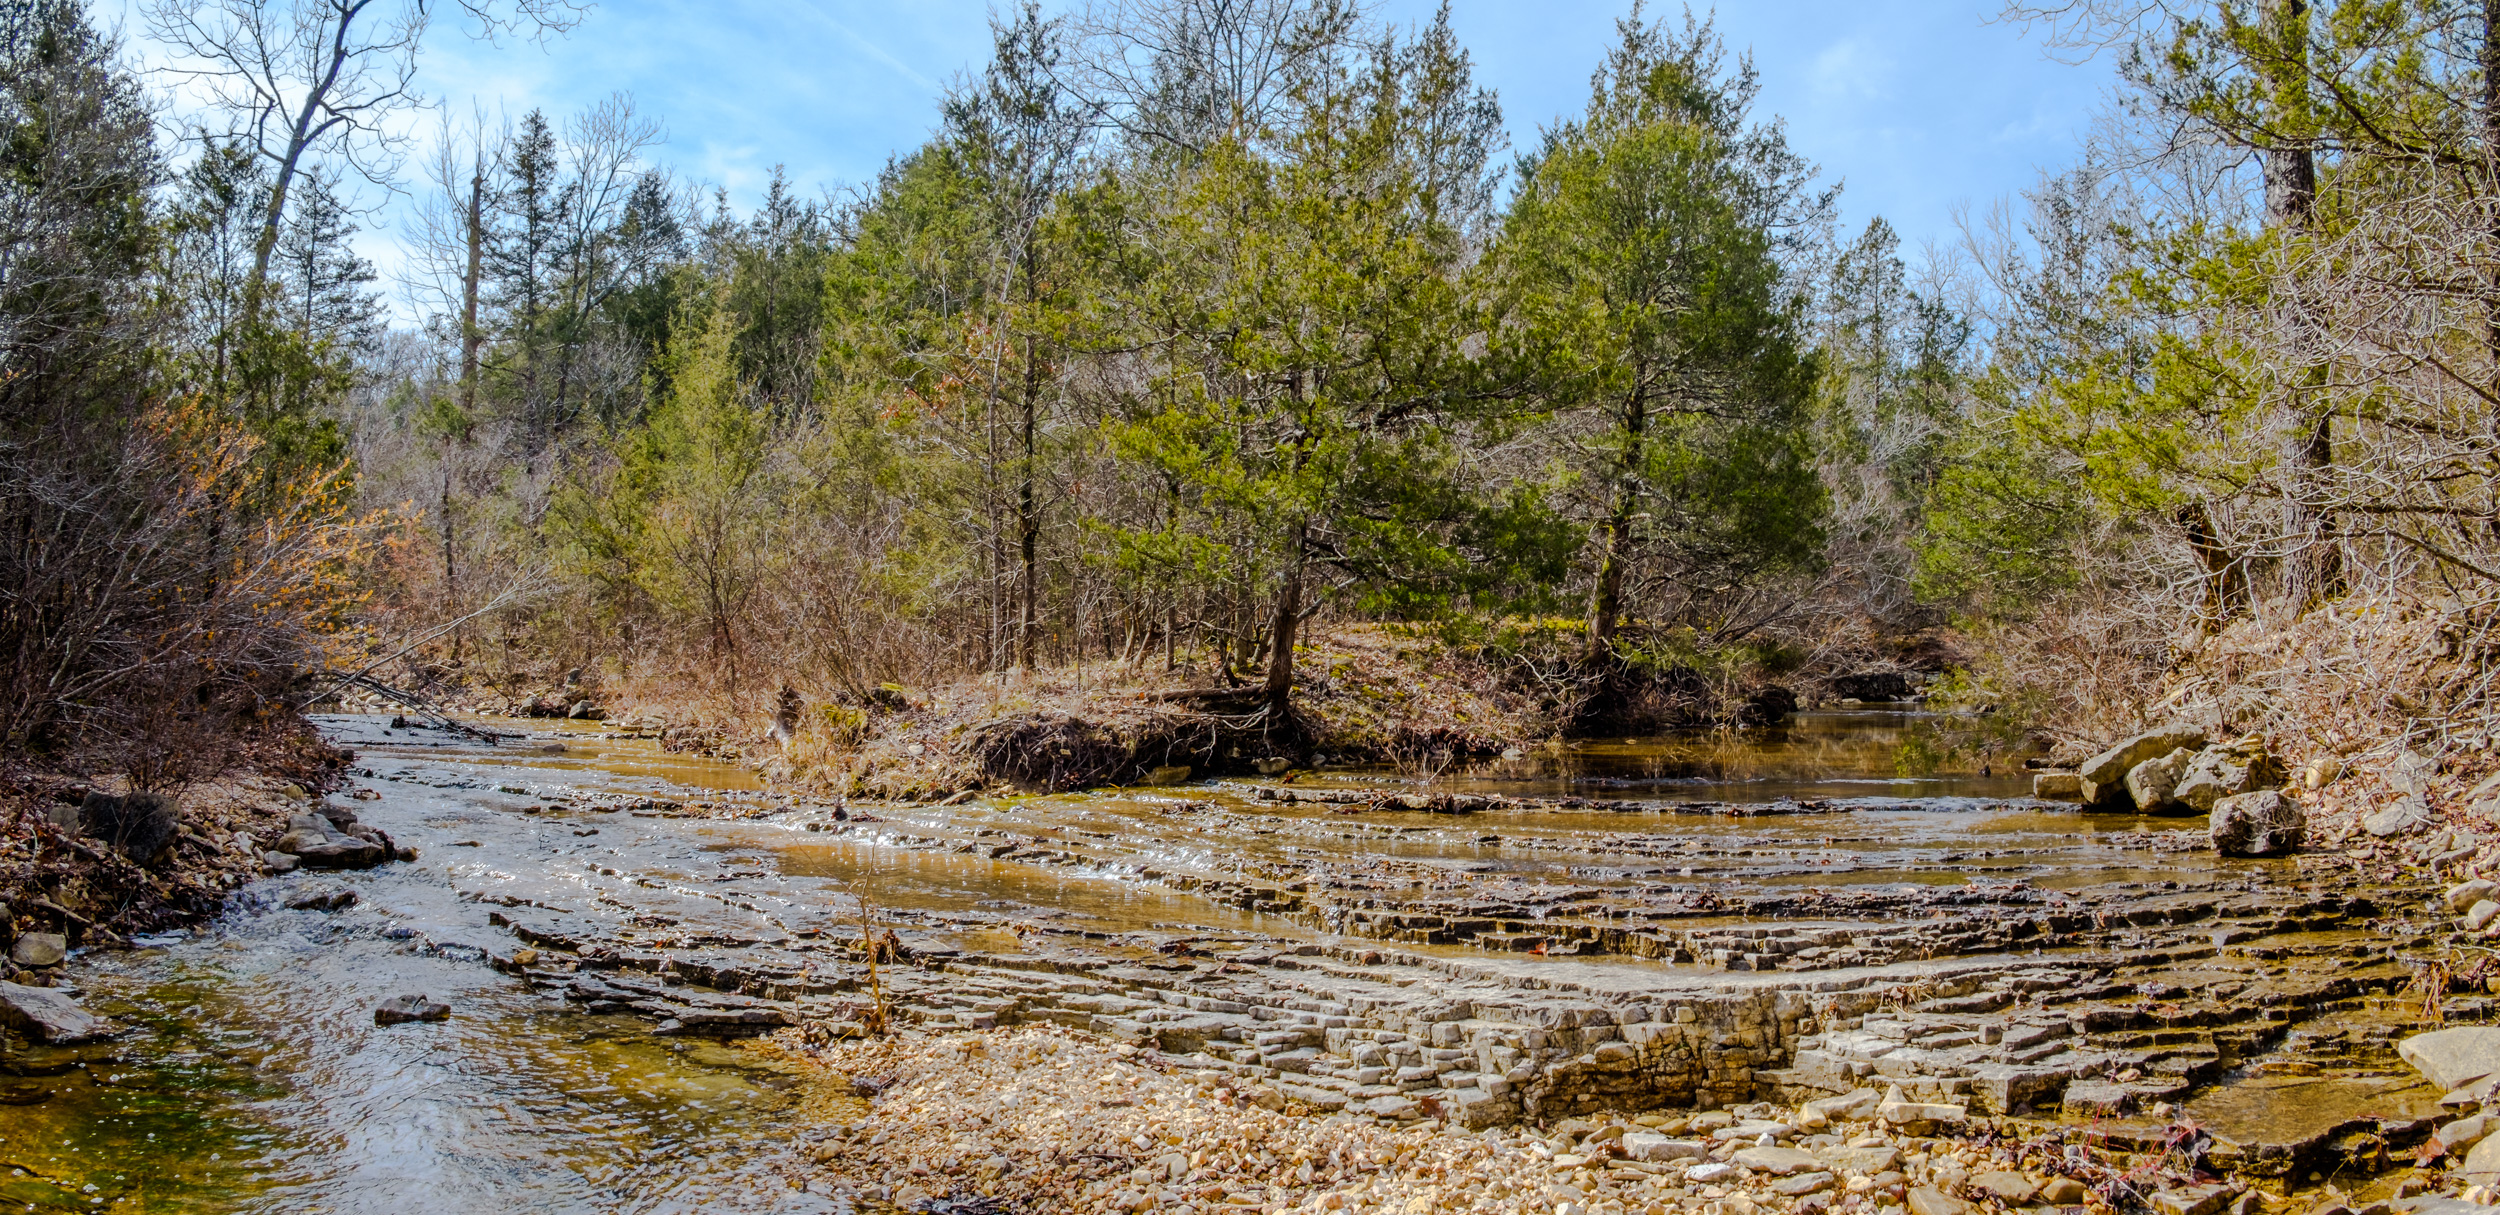 The confluence of Brushy Creek and 'Cab Creek'. on the Pees Hollow Trail at Hercules Glades Wilderness.